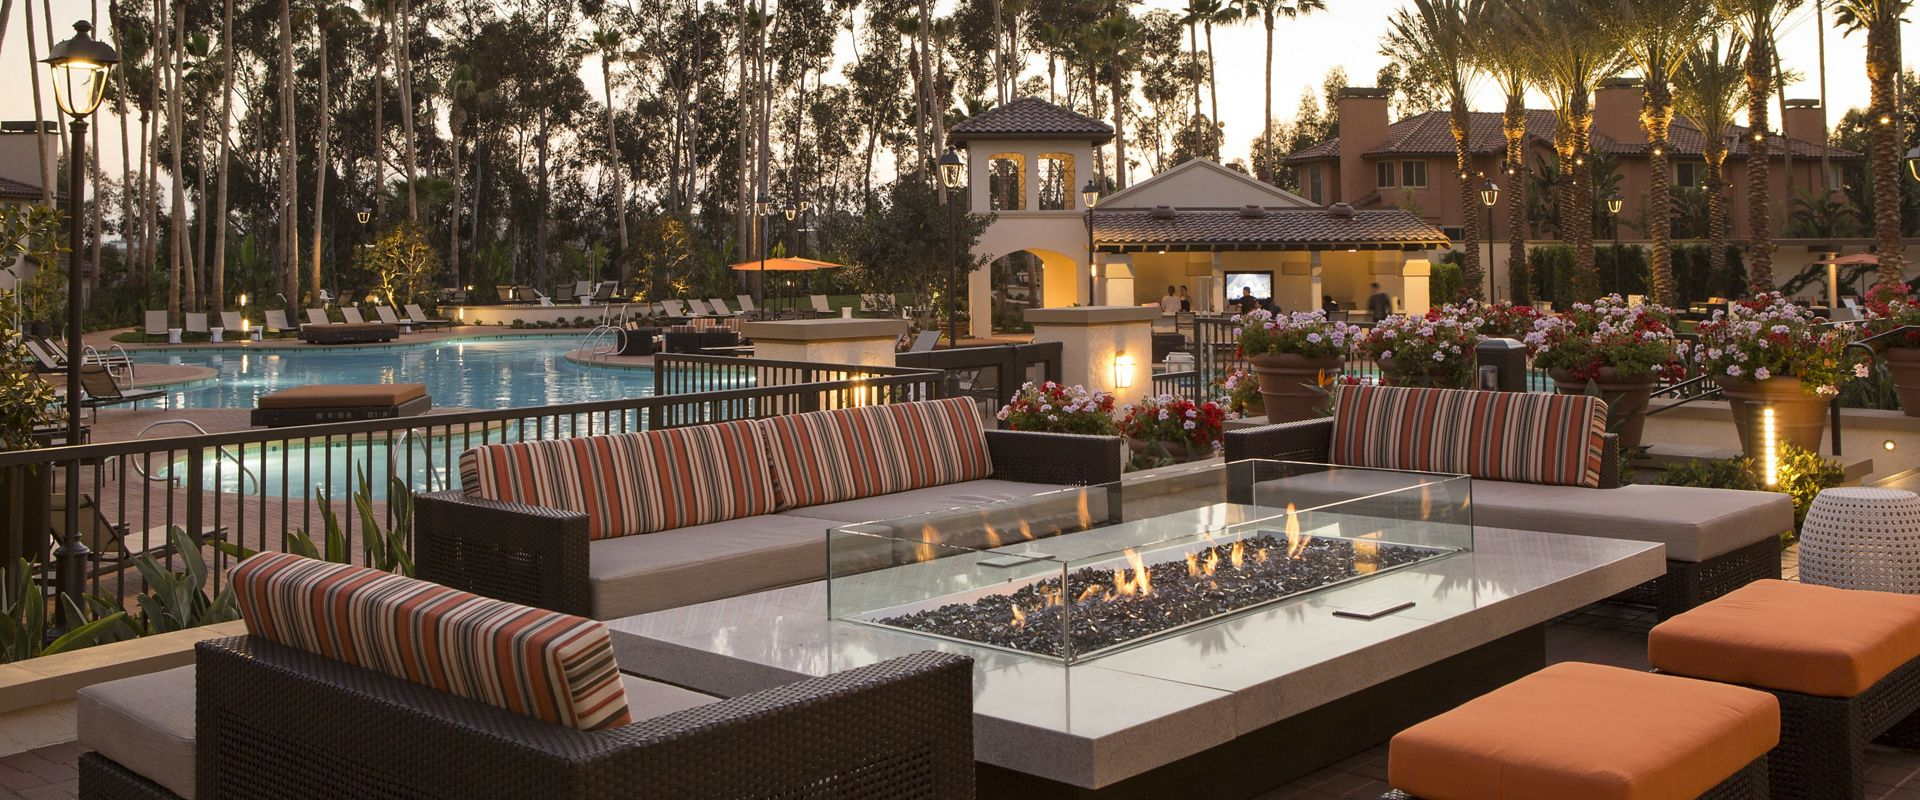 Exterior view of outdoor fireplace at The Village Mission Valley Apartment Homes in San Diego, CA.